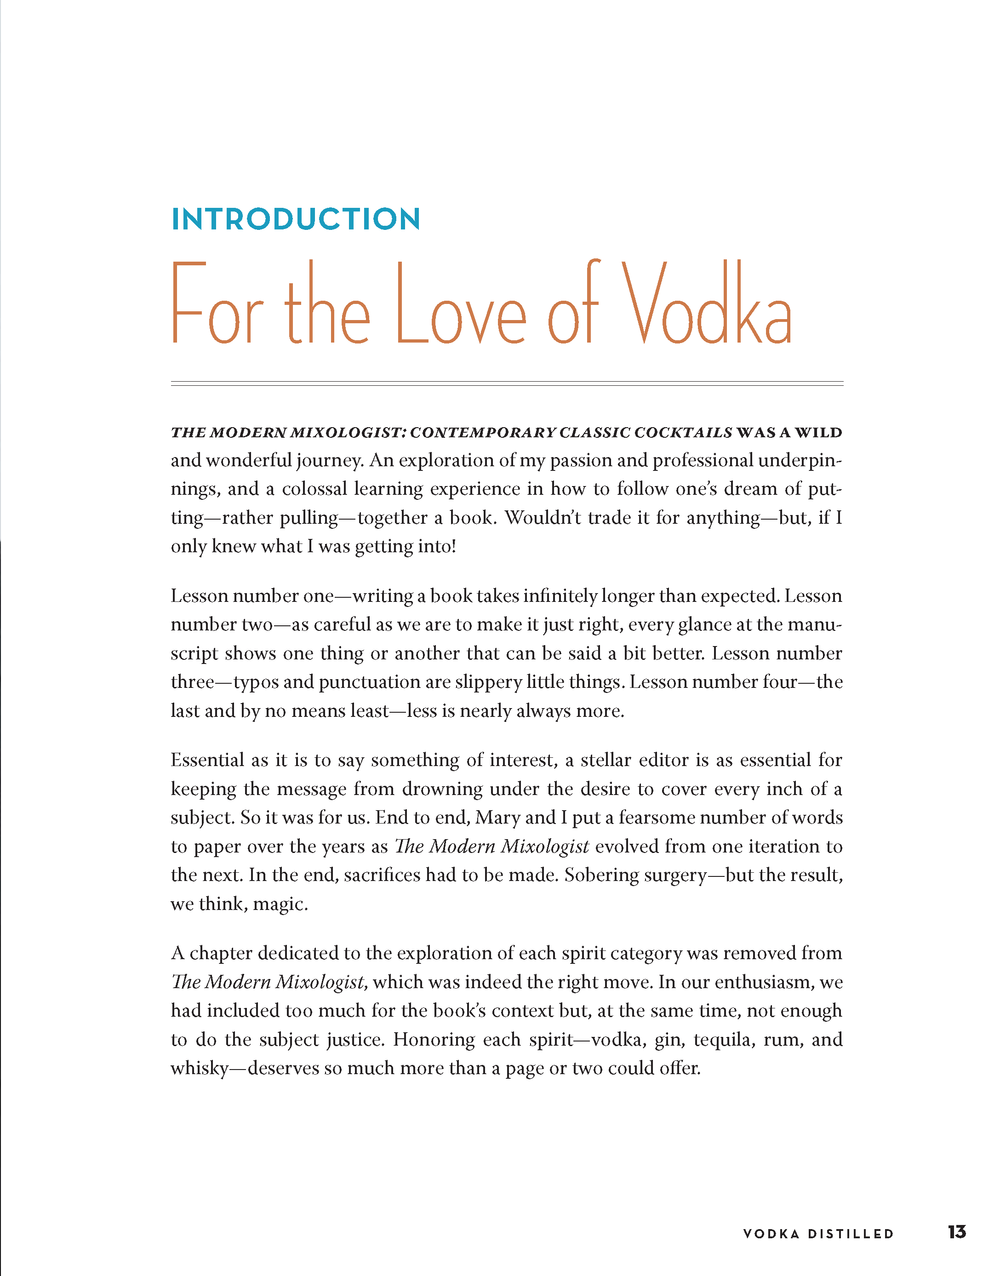 Vodka Distilled_Page_04.png